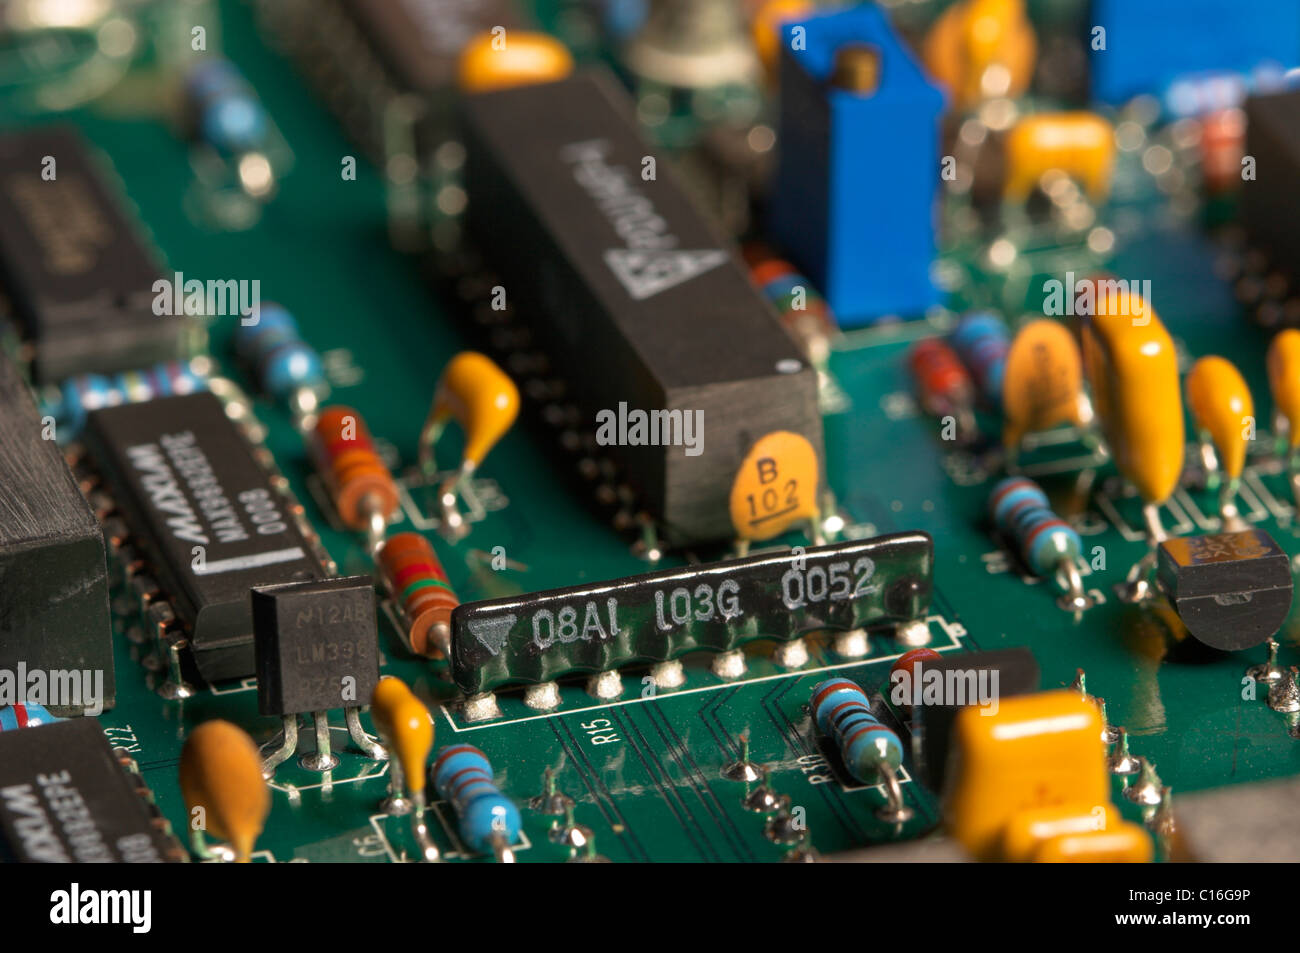 Electronics Pcb Stock Photos Images Alamy Industrial Control Printed Circuit Board Assembly Pcba Macro Of A Used In Electronic Equipment